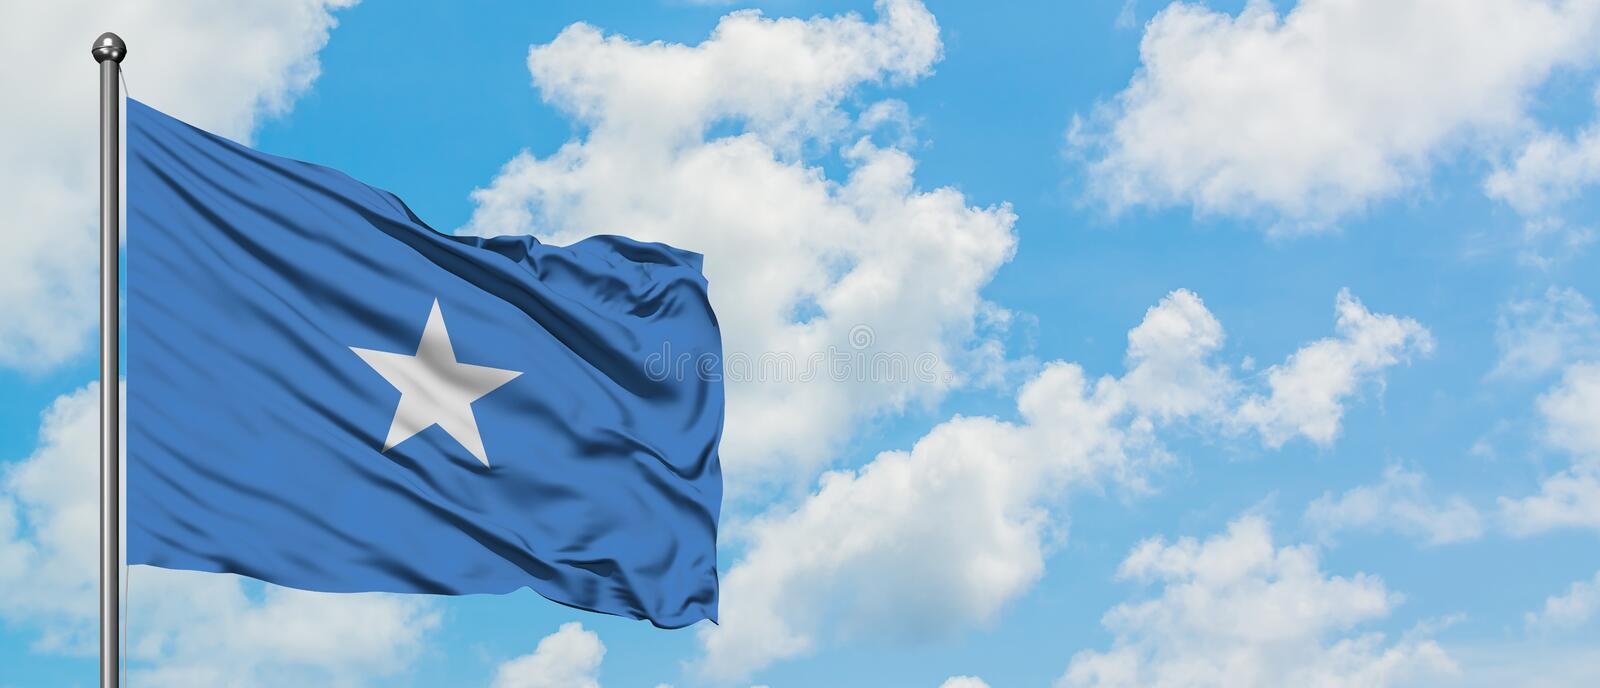 Somalia flag waving in the wind against white cloudy blue sky. Diplomacy concept, international relations.  royalty free stock image